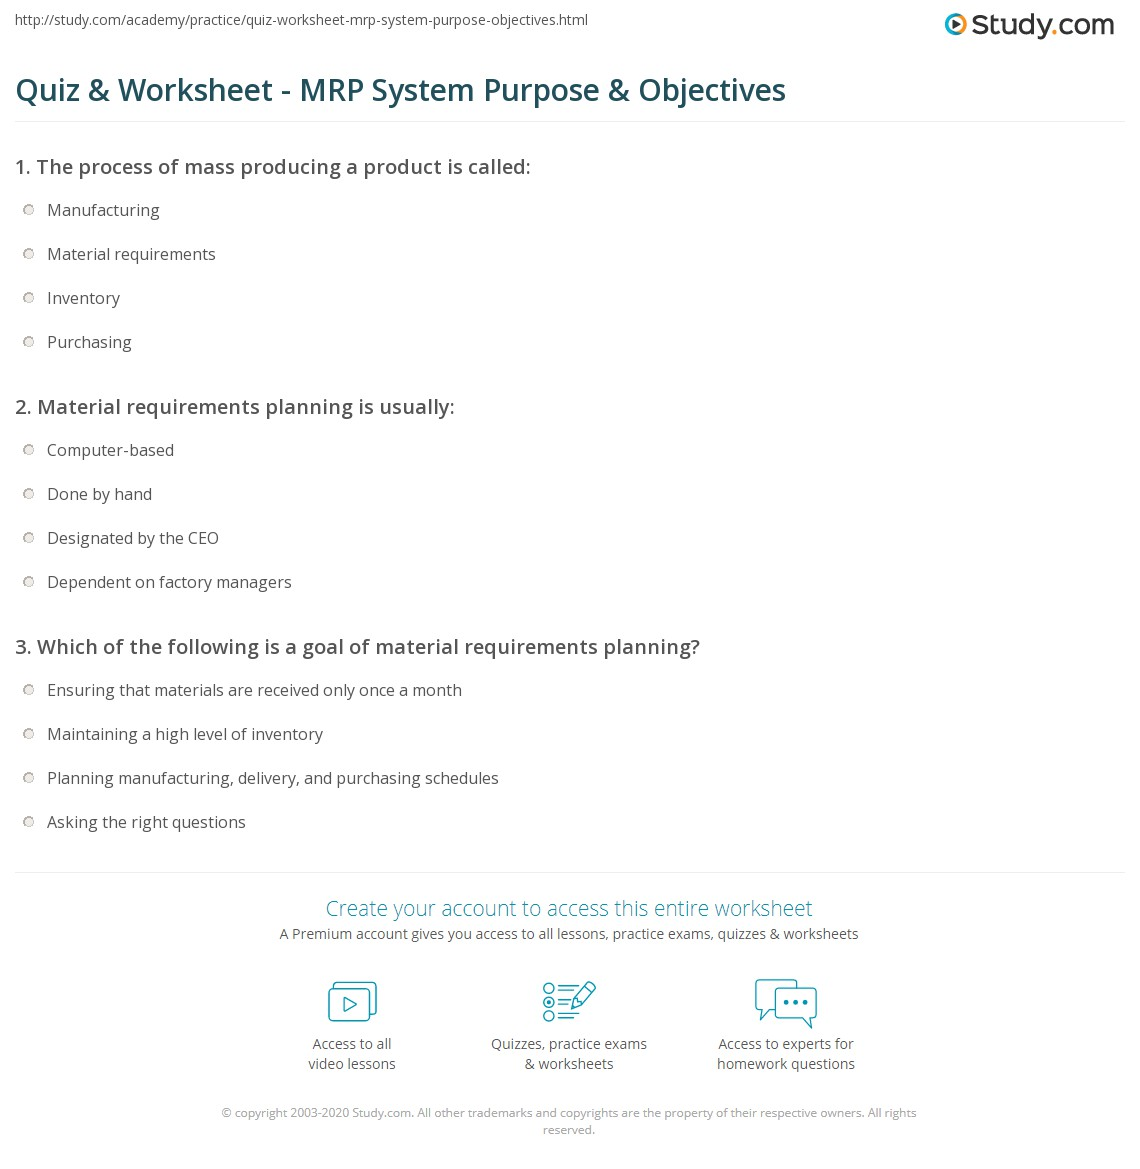 Quiz & Worksheet - MRP System Purpose & Objectives | Study.com